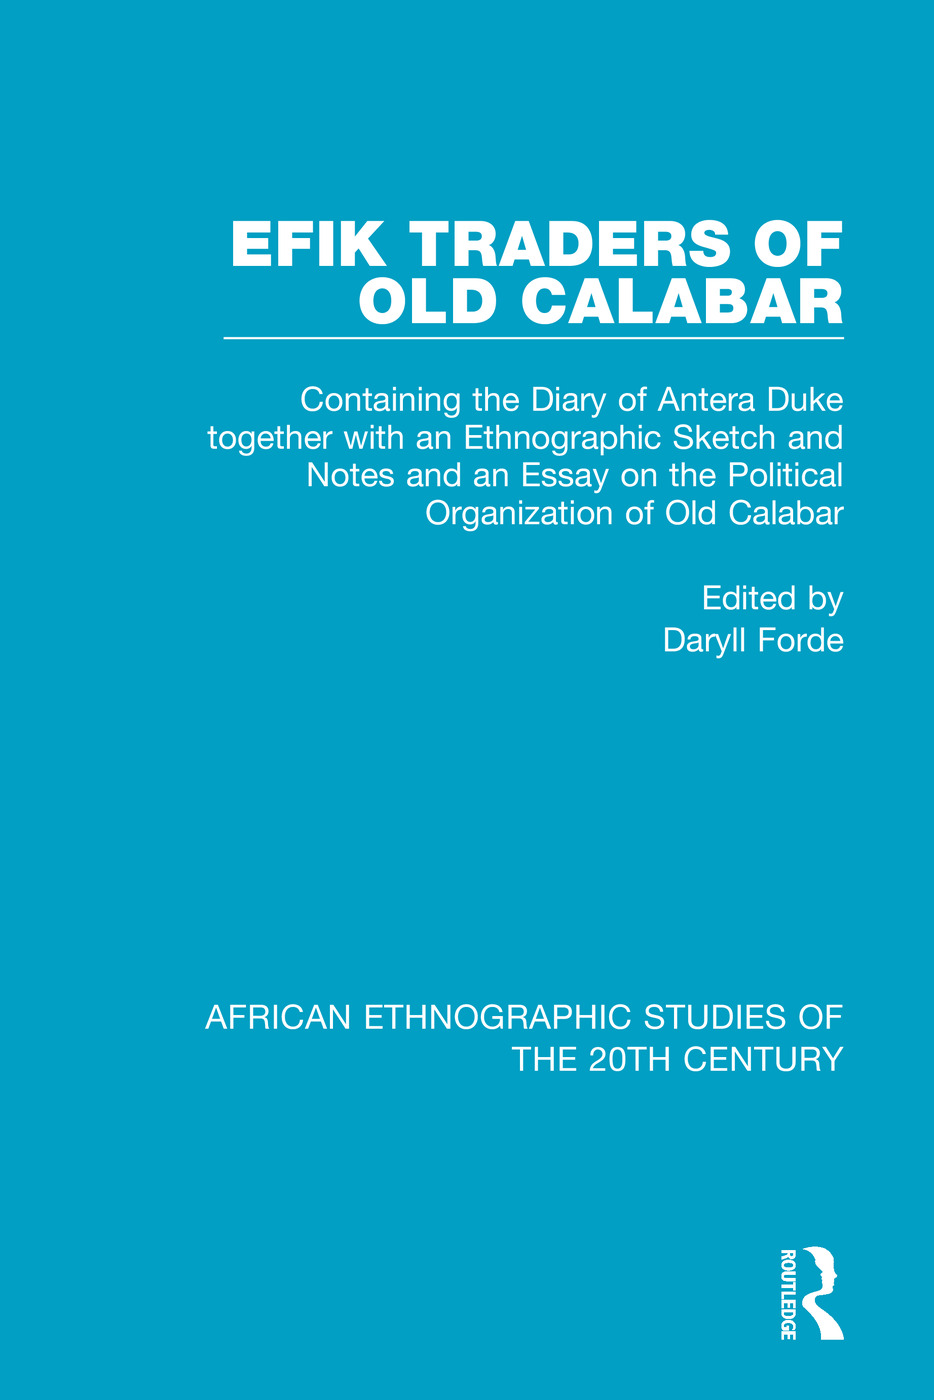 Efik Traders of Old Calabar: Containing the Diary of Antera Duke together with an Ethnographic Sketch and Notes and an Essay on the Political Organization of Old Calabar book cover